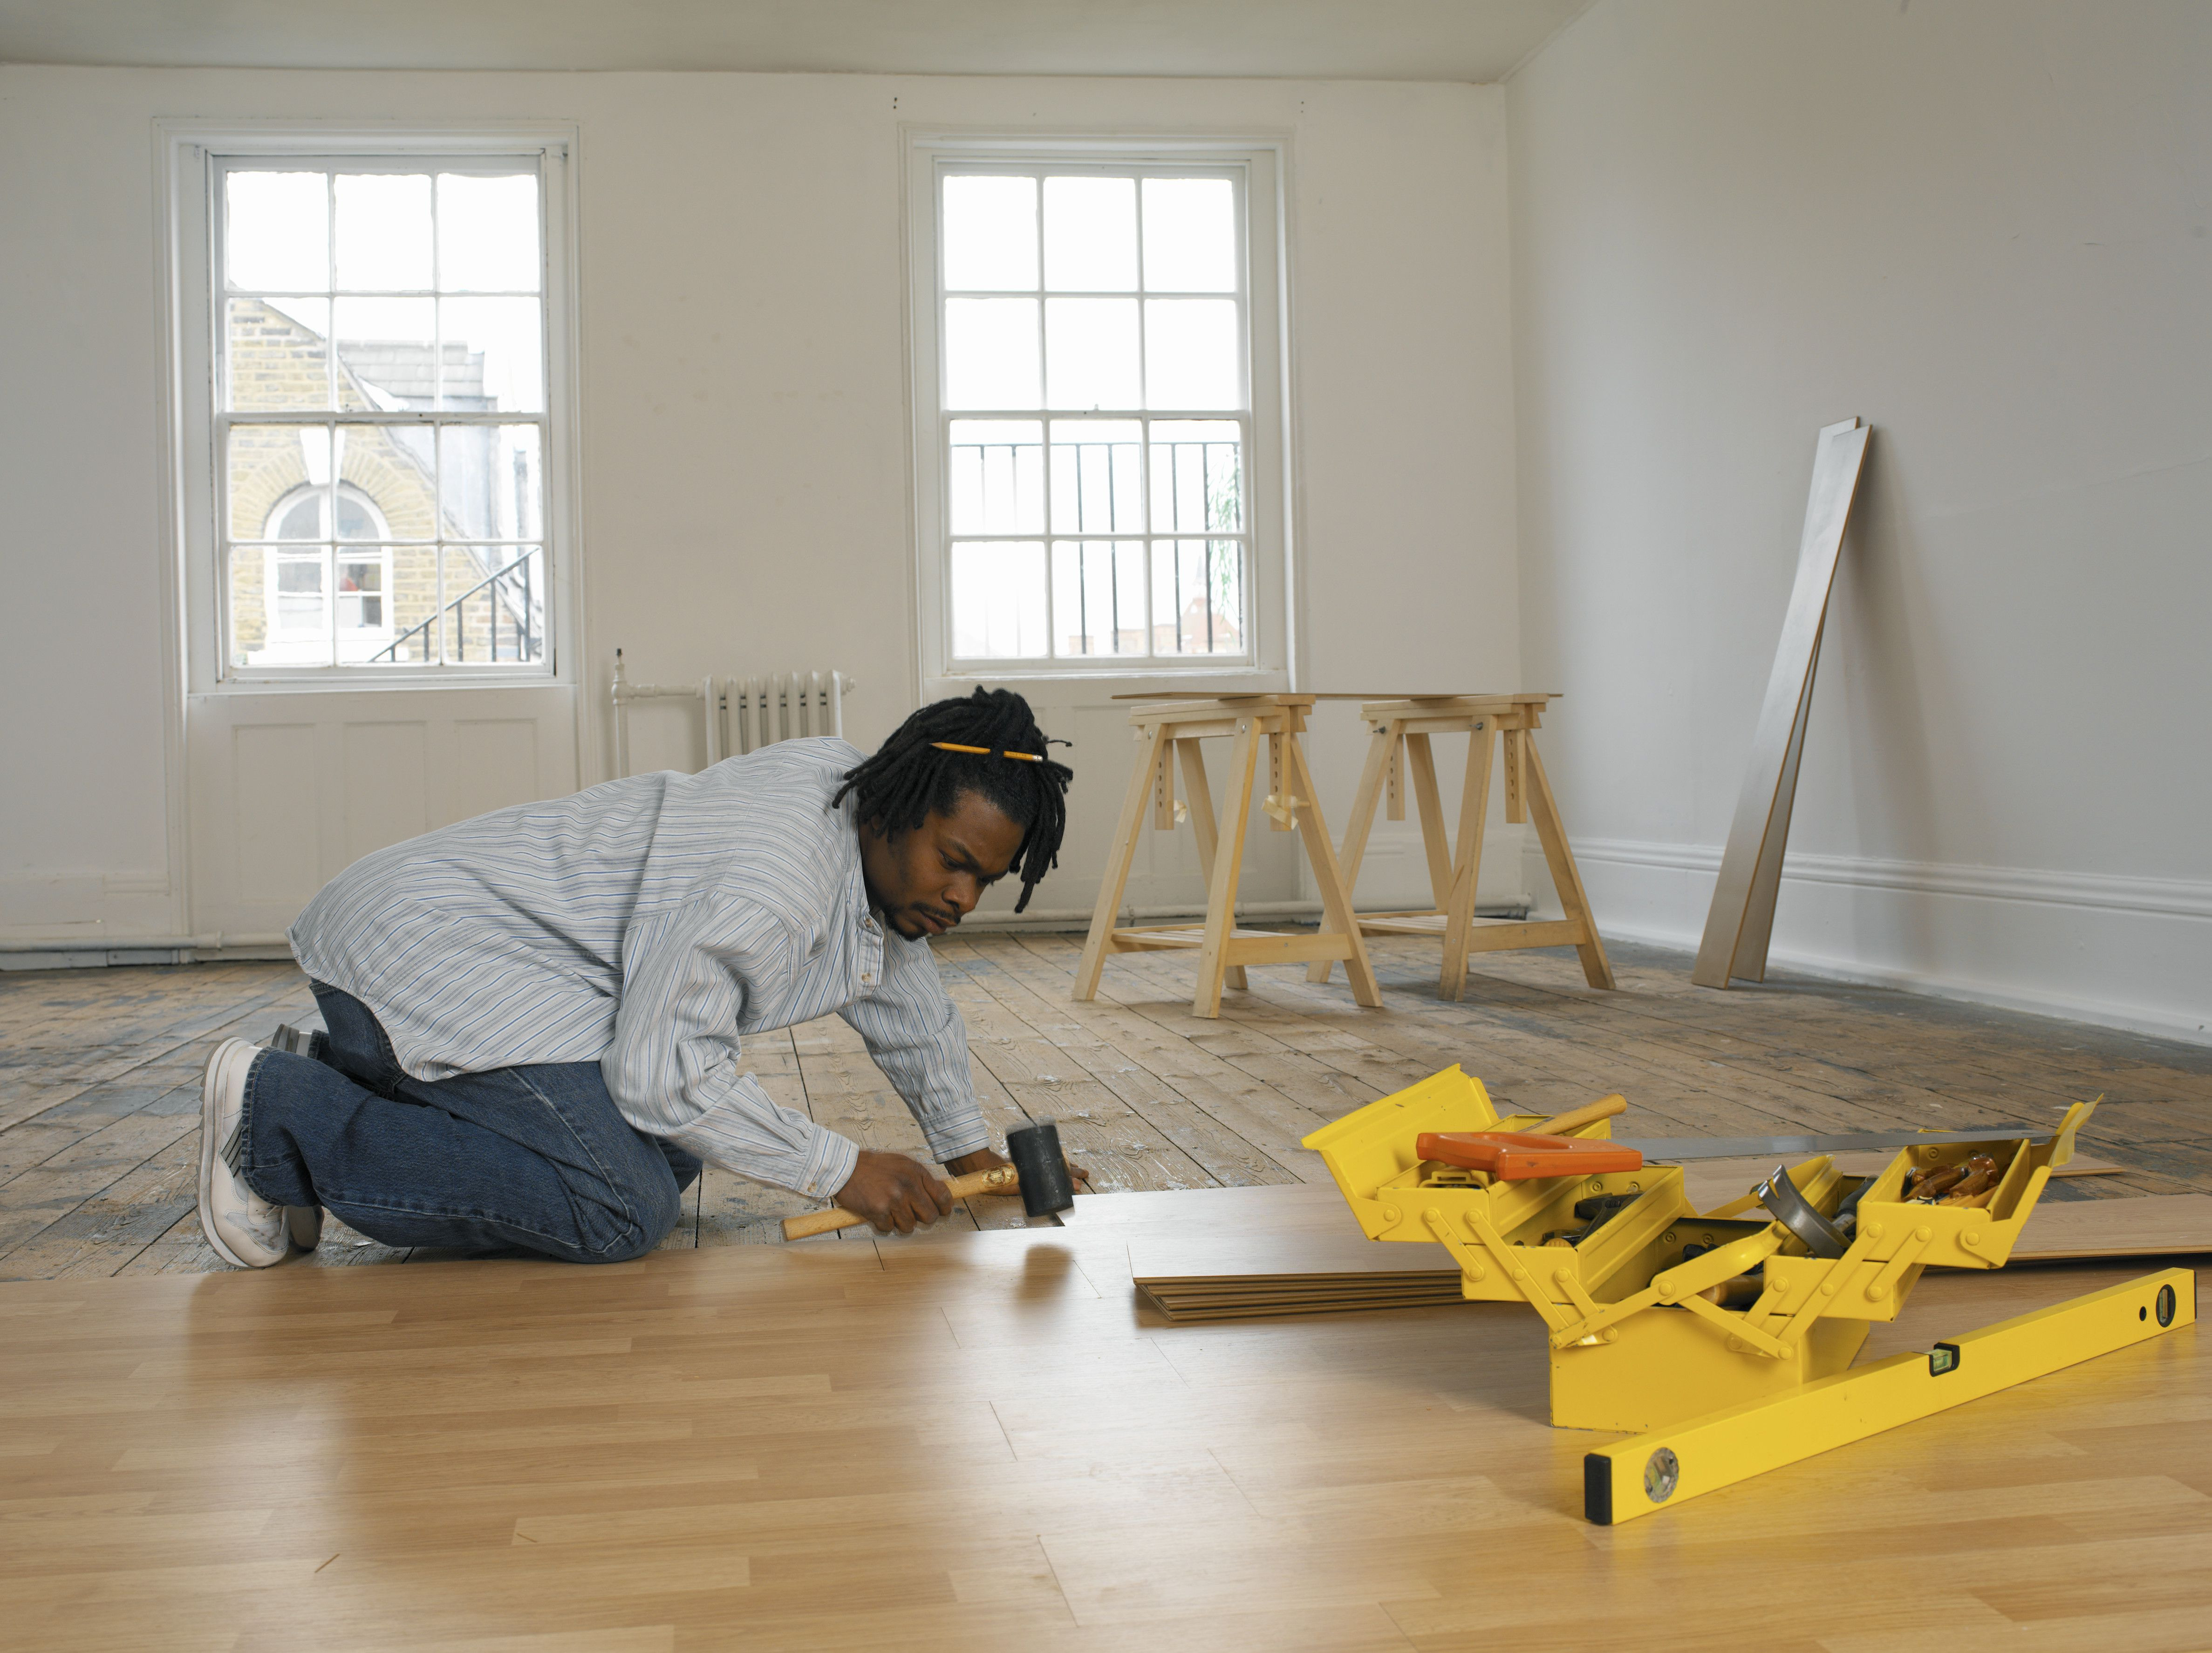 hardwood floor repair nj of ikea flooring review overview with young man laying floor 200199826 001 57e96a973df78c690f719440